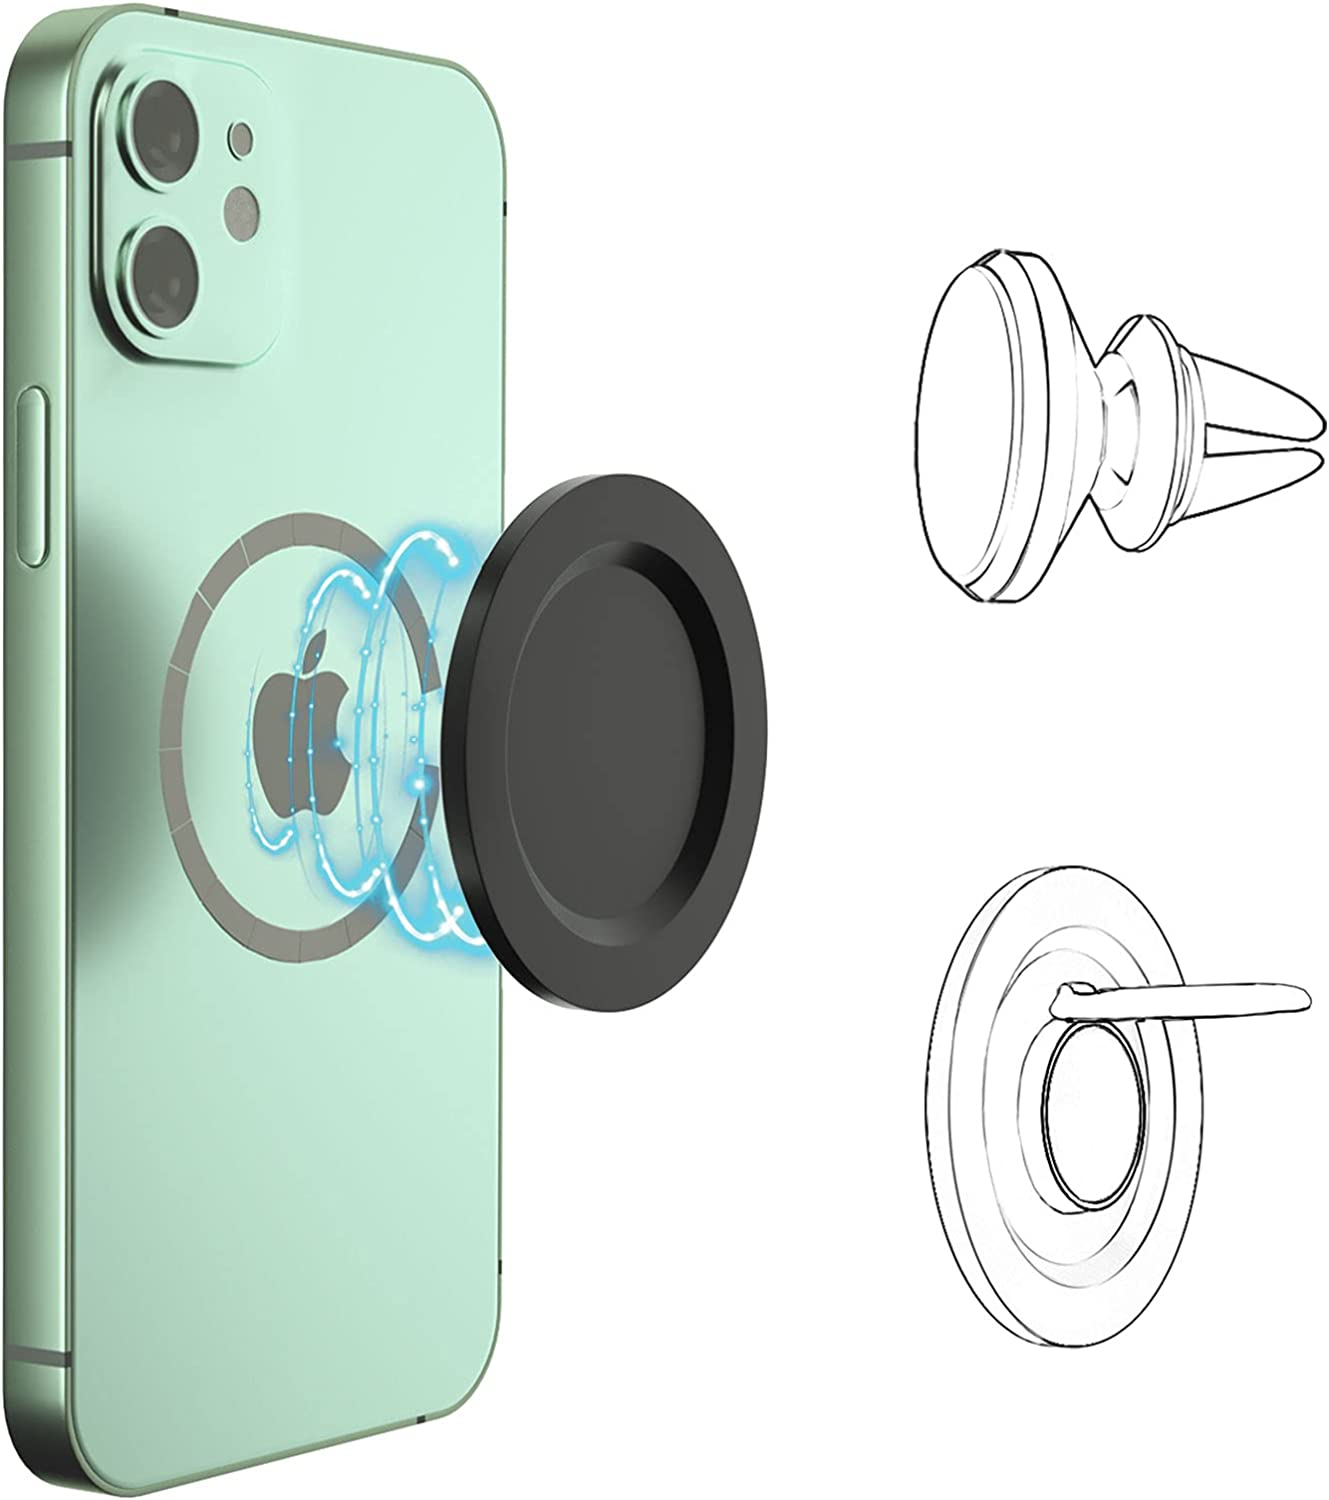 HOMVIDA Magnetic Pop Base Compitable with iPhone 12/Mini/pro/max Wireless Charging Magsafe Accessories for P-Socket Phone Ring Holder Car Mount (Base Only)